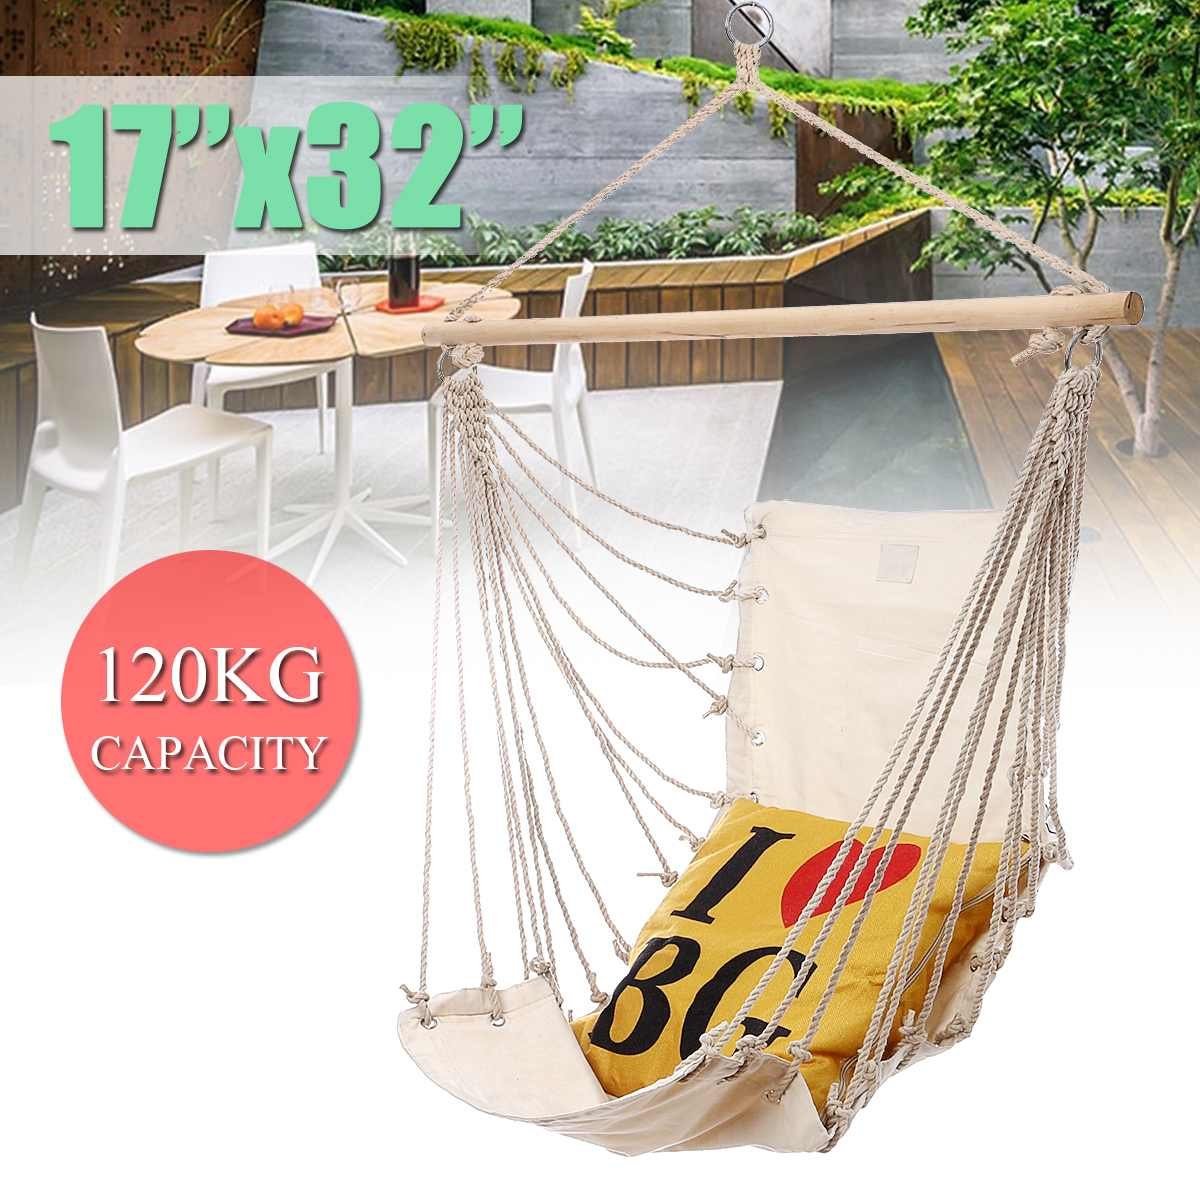 Outdoor Garden Hanging Hammock Chair Camping Single Swing Seat Relaxing Furniture For Child Adult Swinging Safety Chair